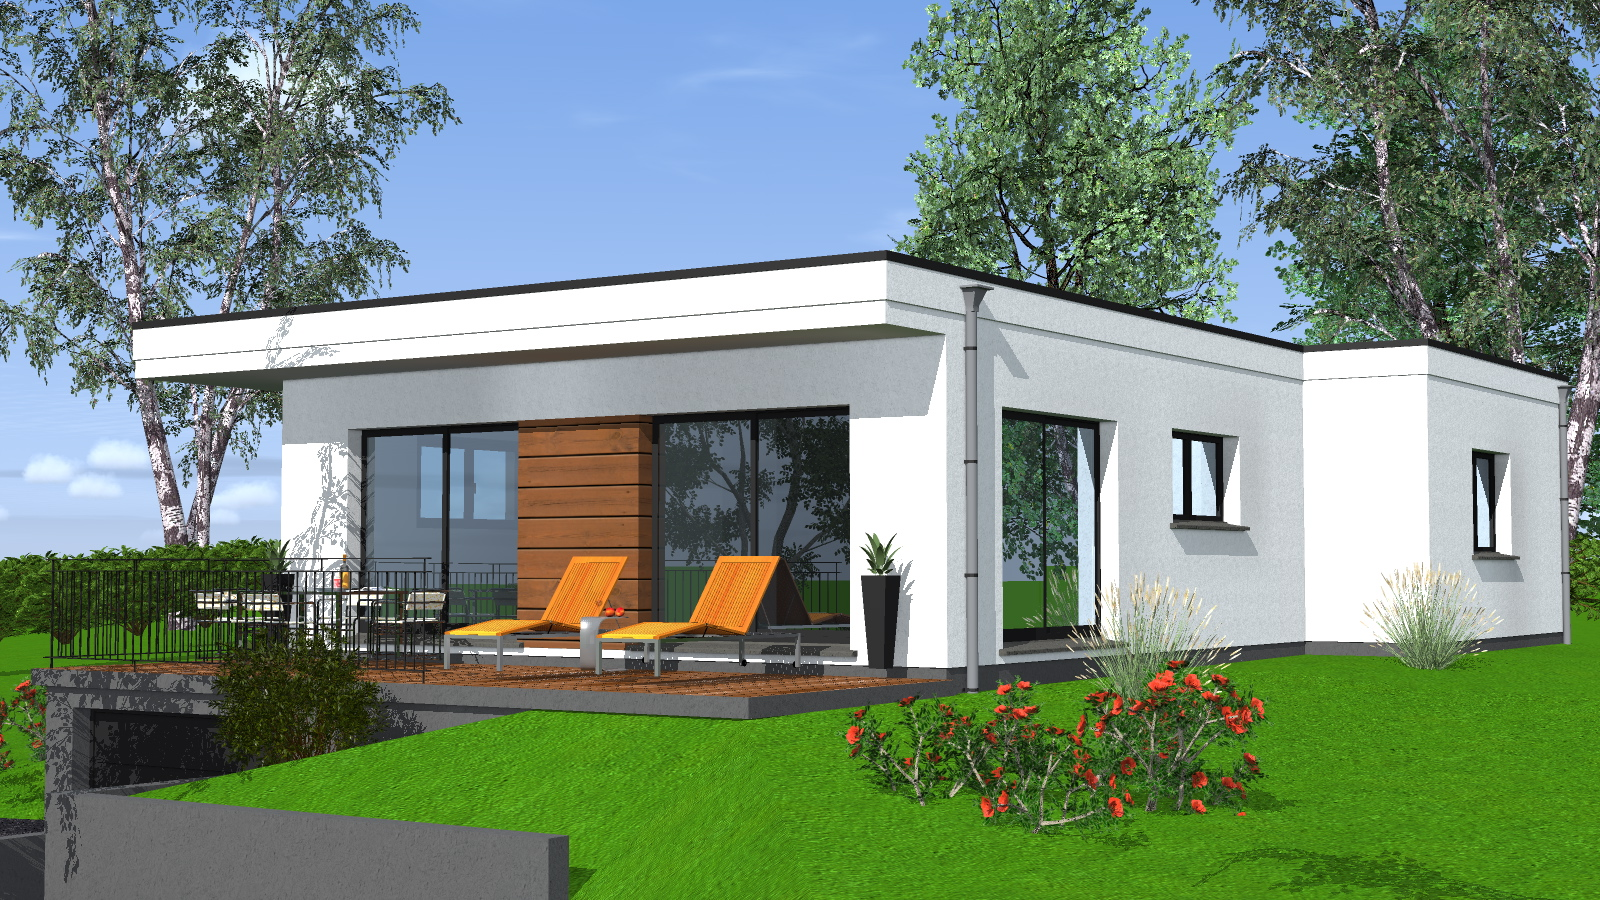 Construction maison de plain pied maisons begi for Maison contemporaine toit plat plain pied